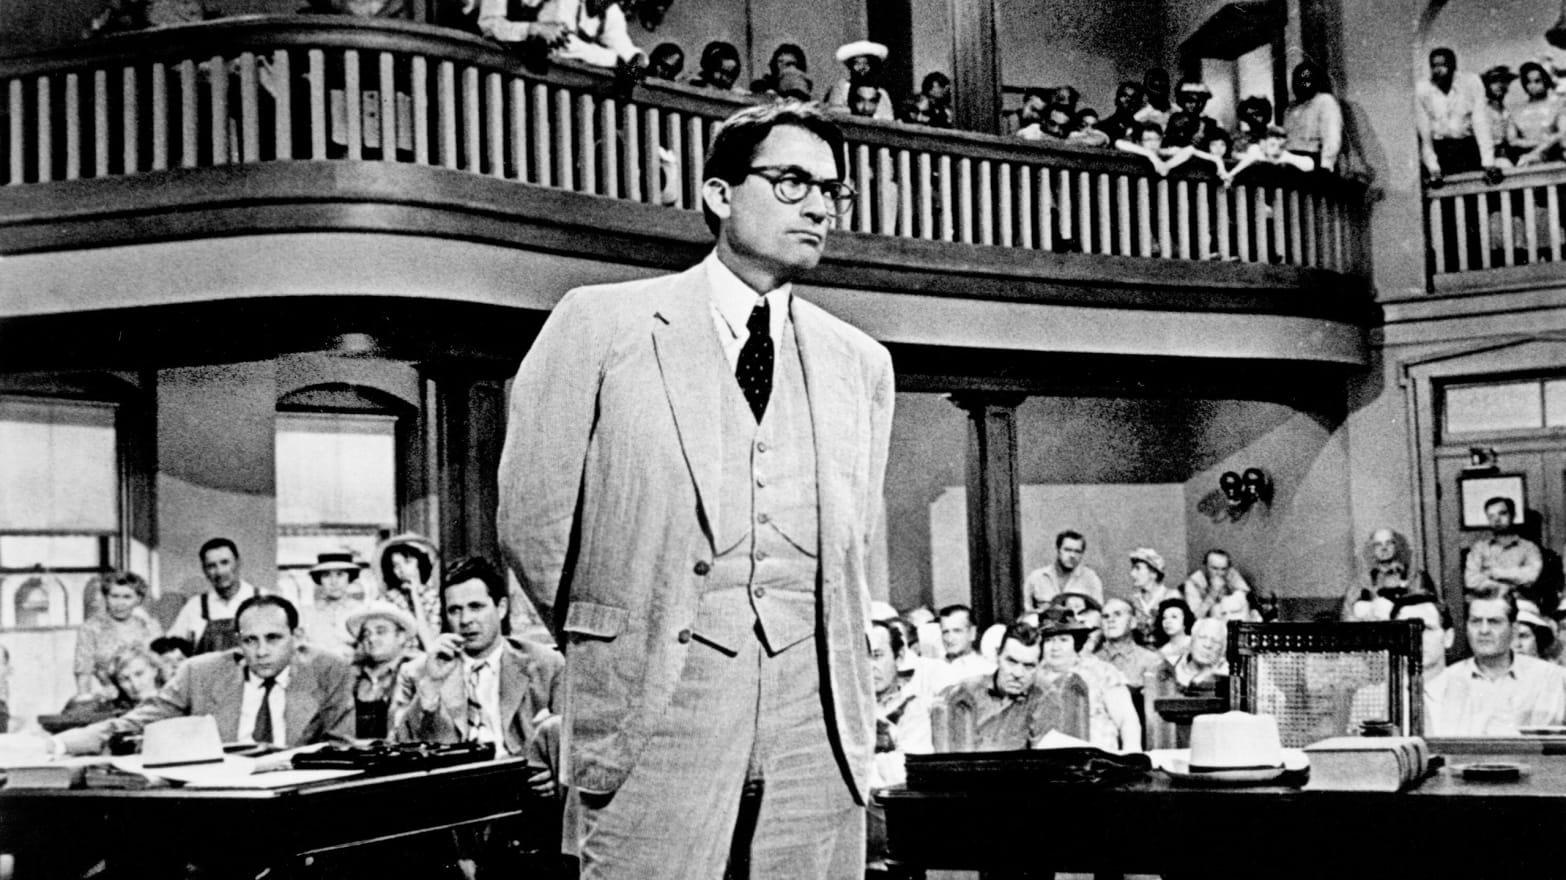 Image of the 1962 to kill a mockingbird